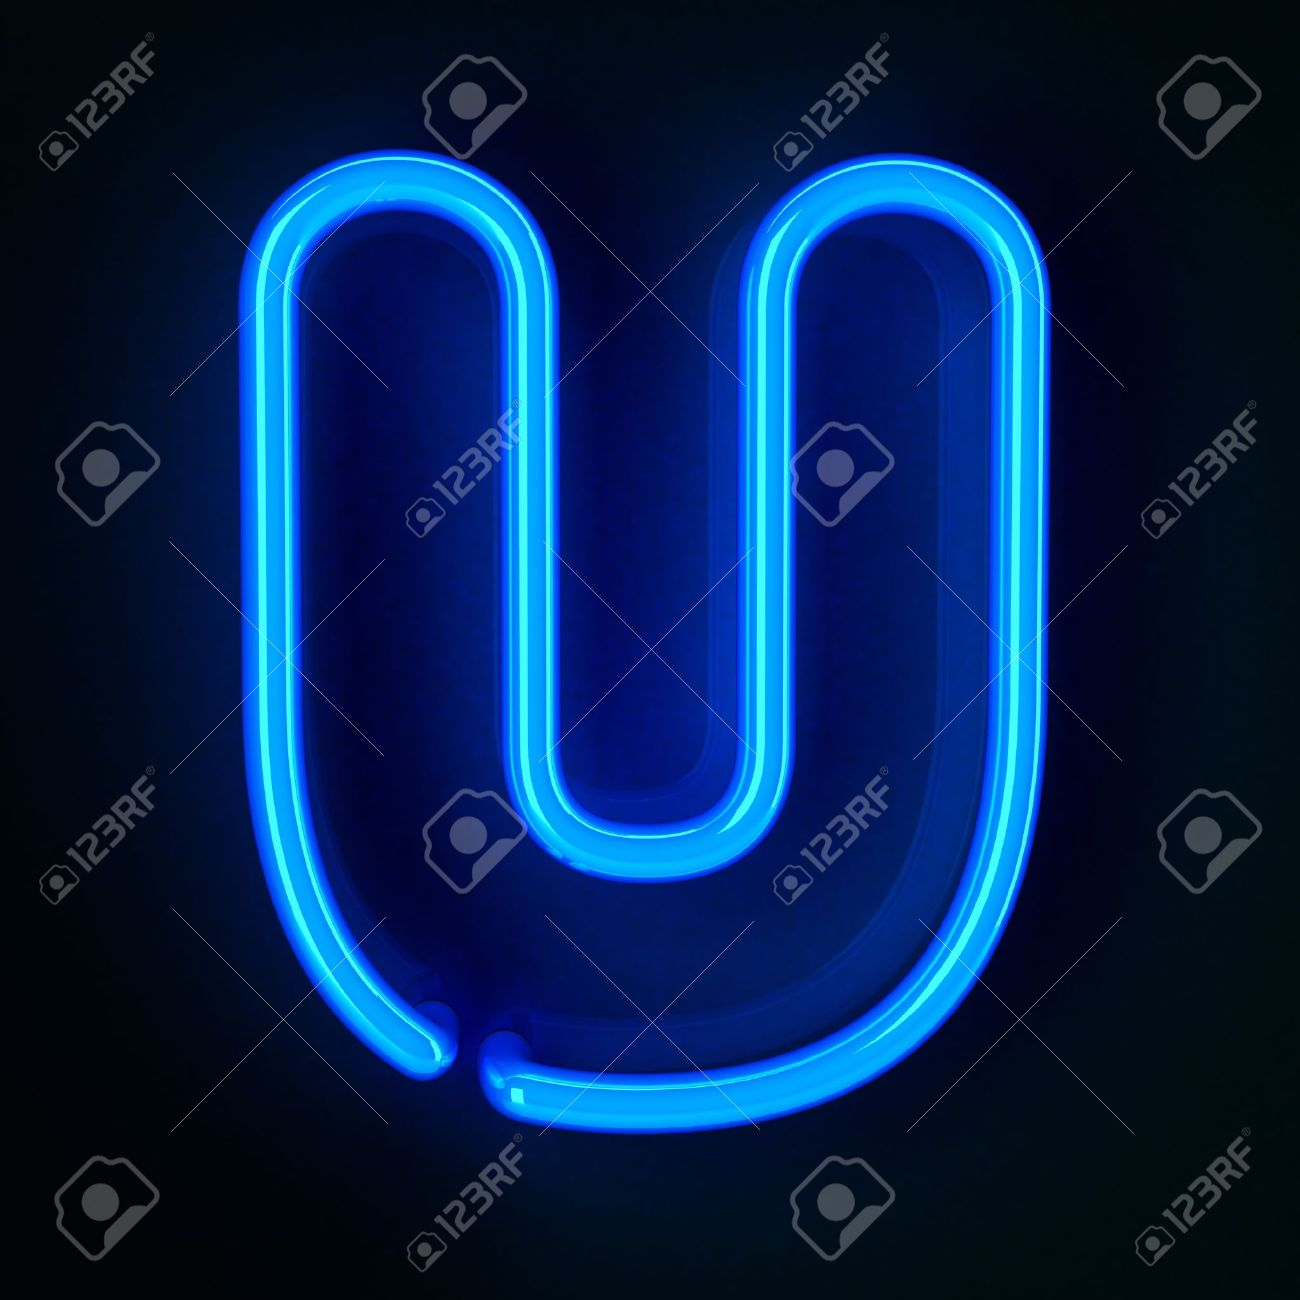 Highly Detailed Neon Sign With The Letter U Stock Picture